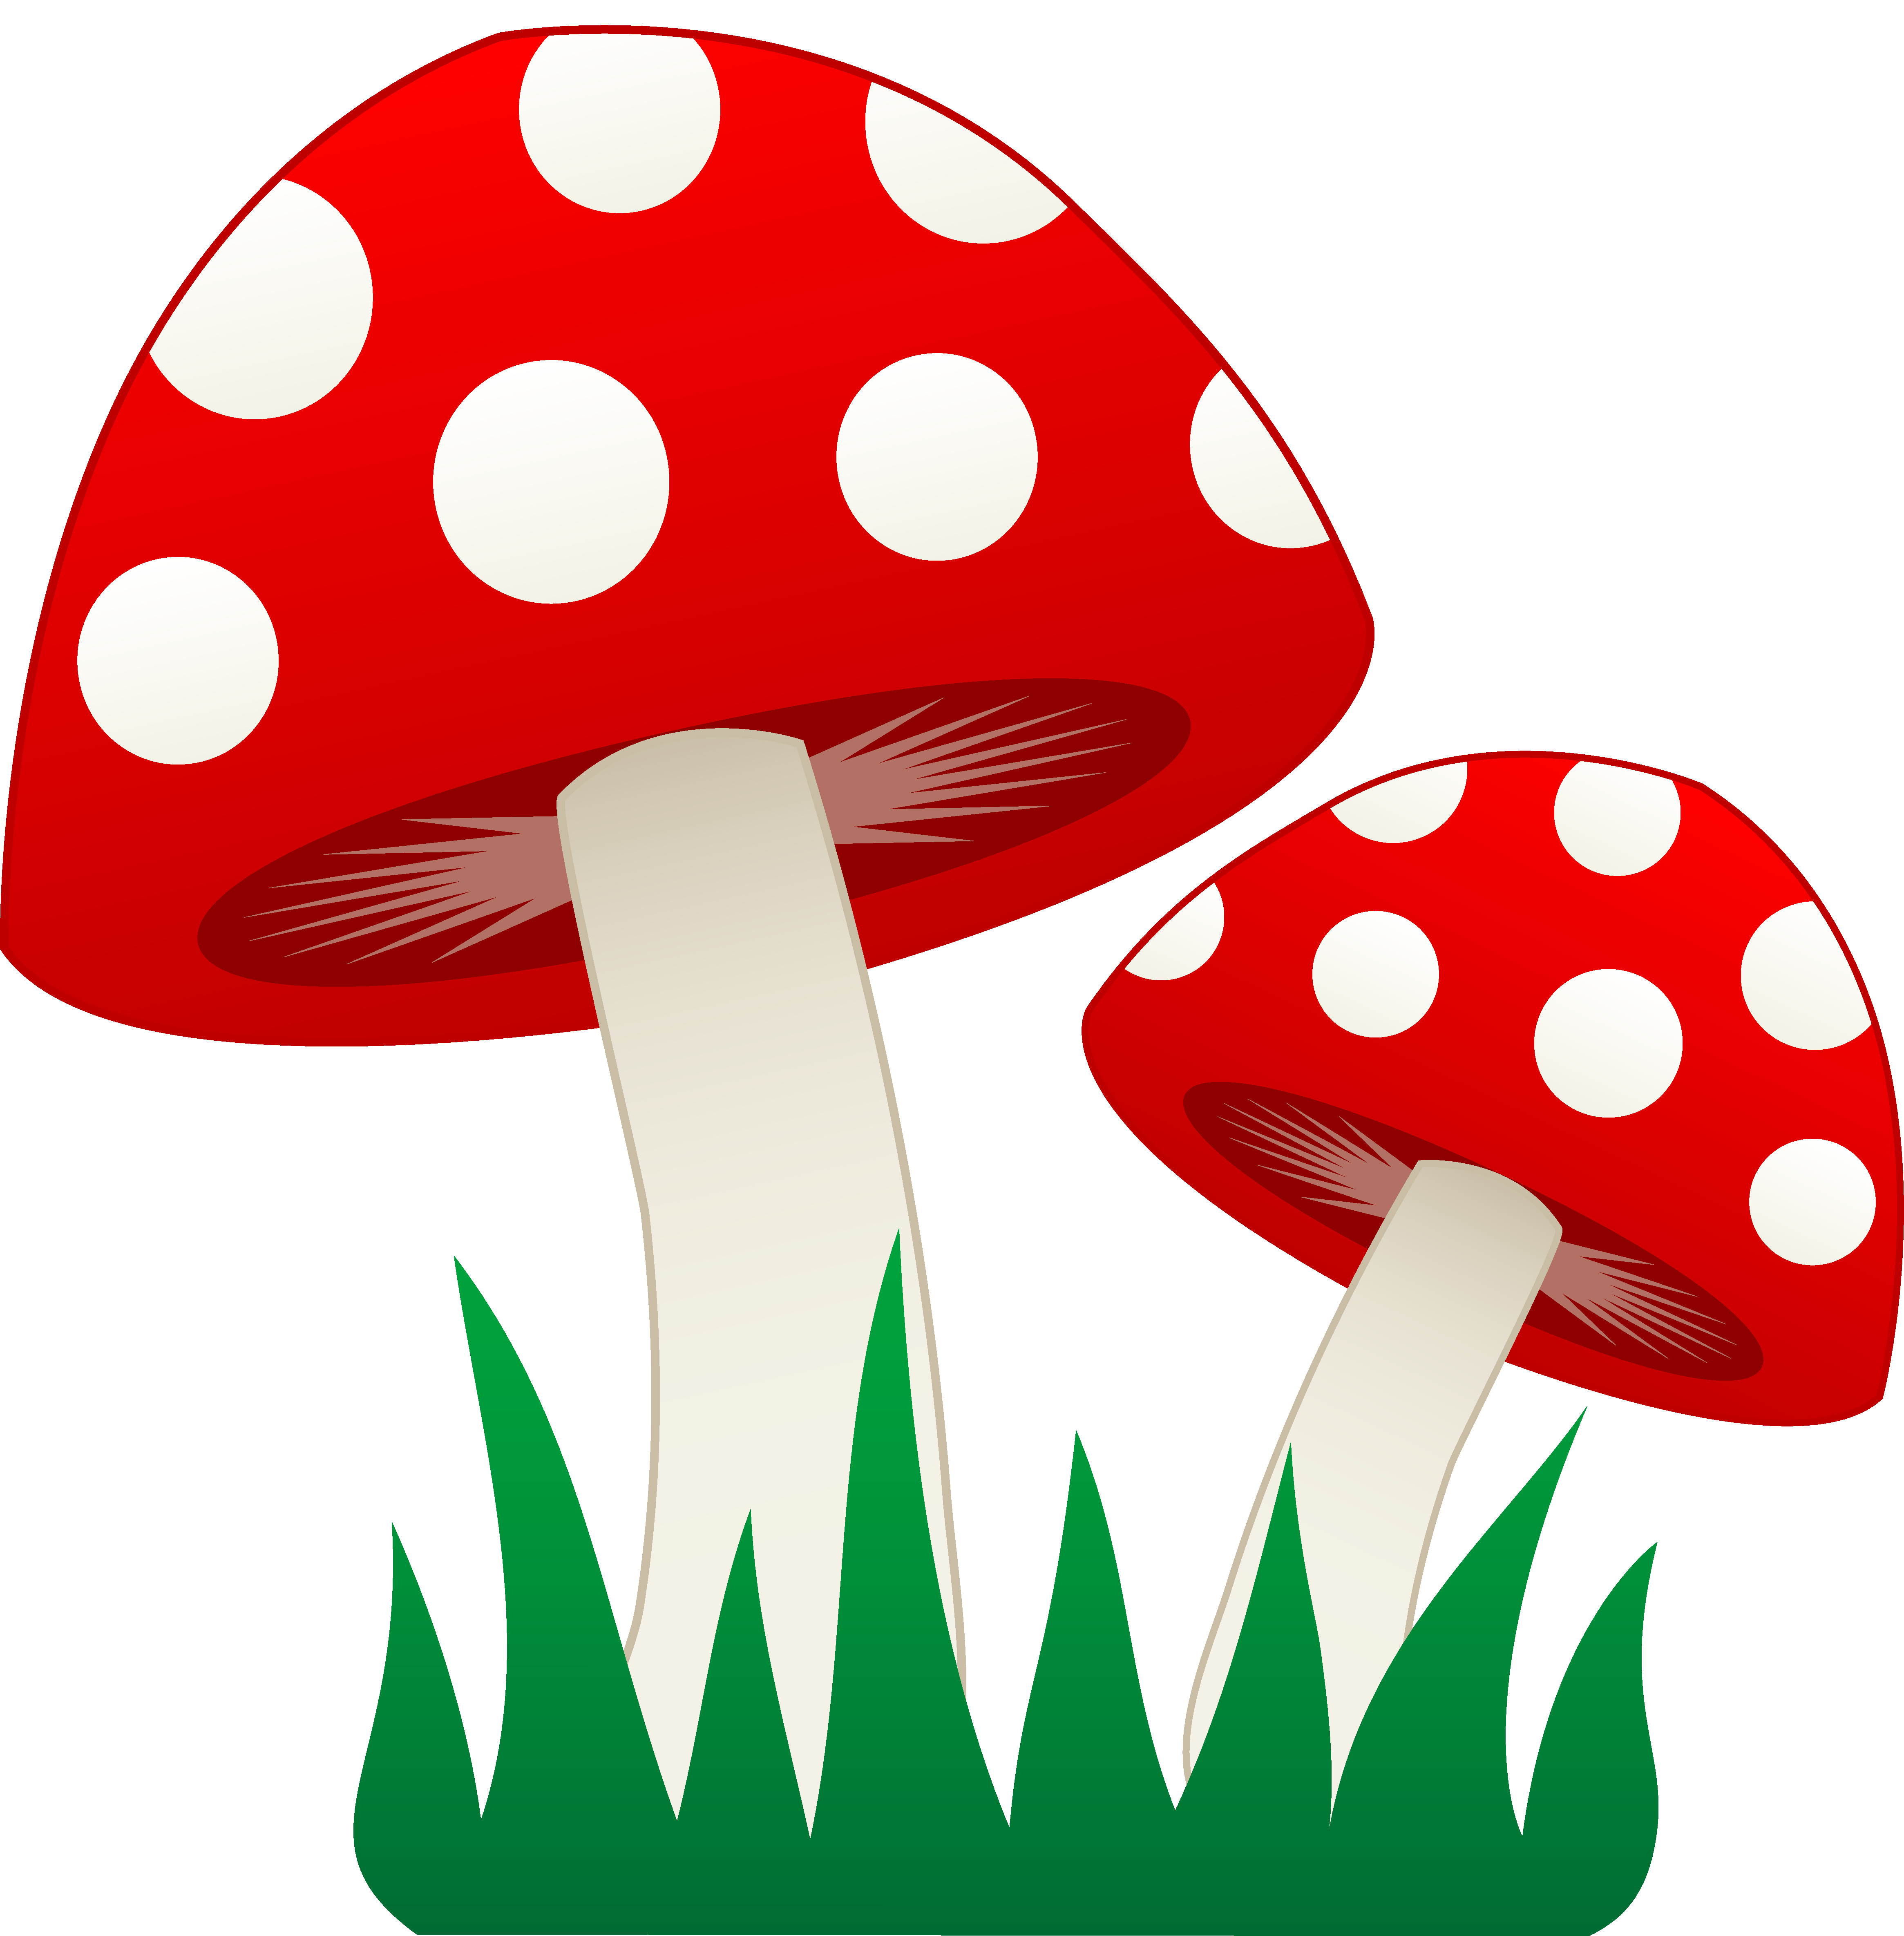 1000  images about Mushrooms on Pinteres-1000  images about Mushrooms on Pinterest | Clip art, Snails and Vector design-0